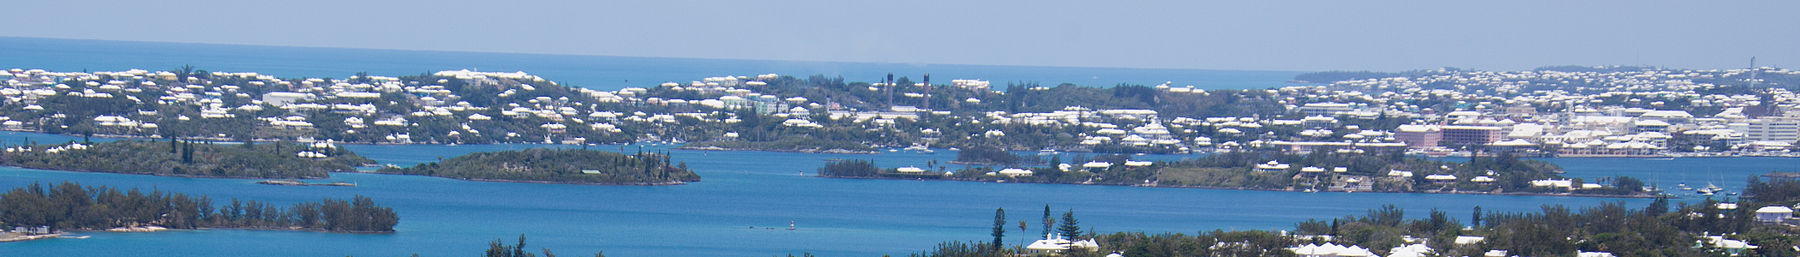 Bermuda banner View from Gibbs lighthouse.jpg